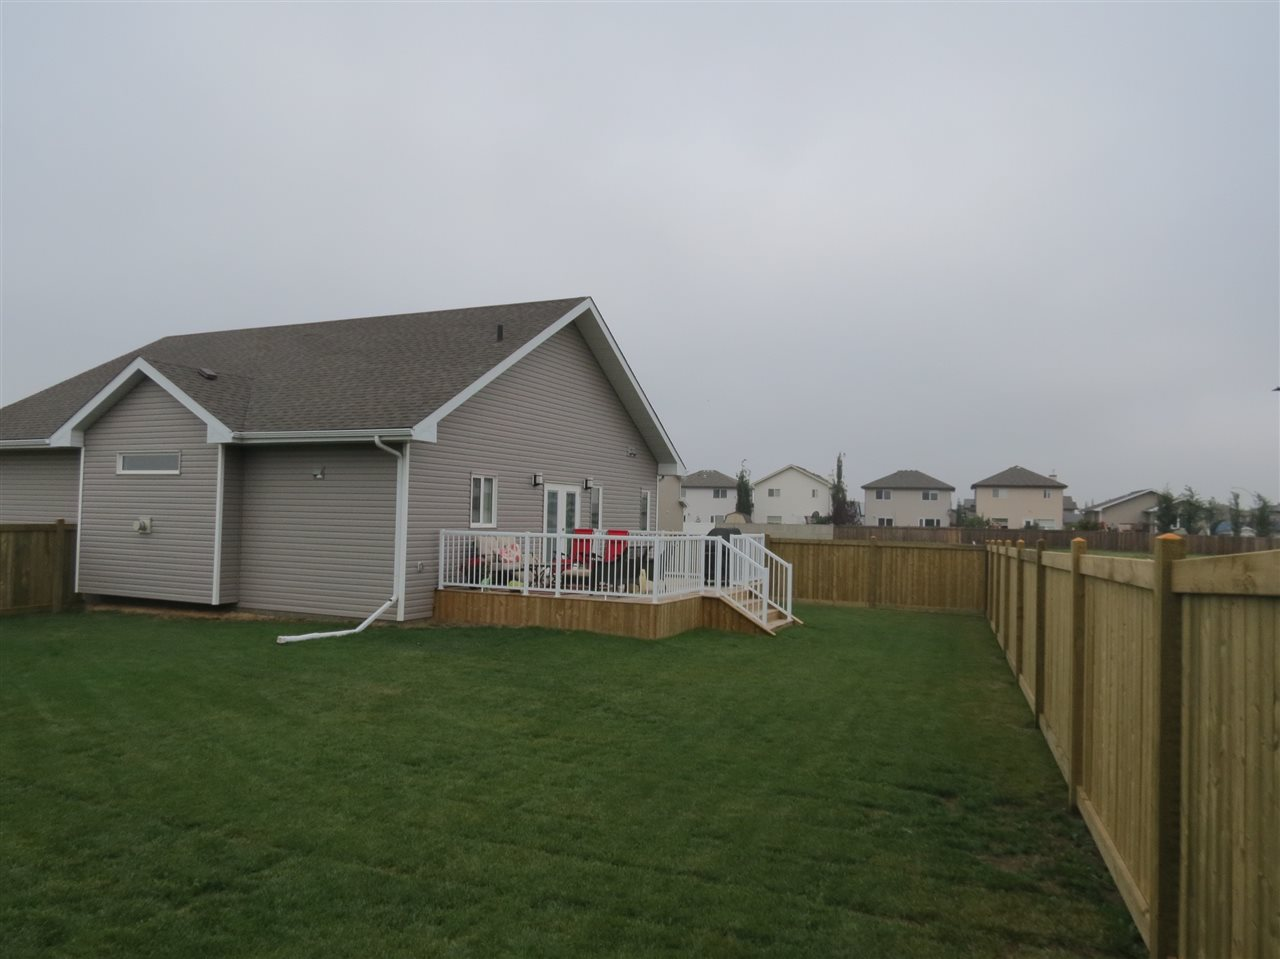 Photo 25: 9605 88 Street: Morinville House for sale : MLS(r) # E4047749